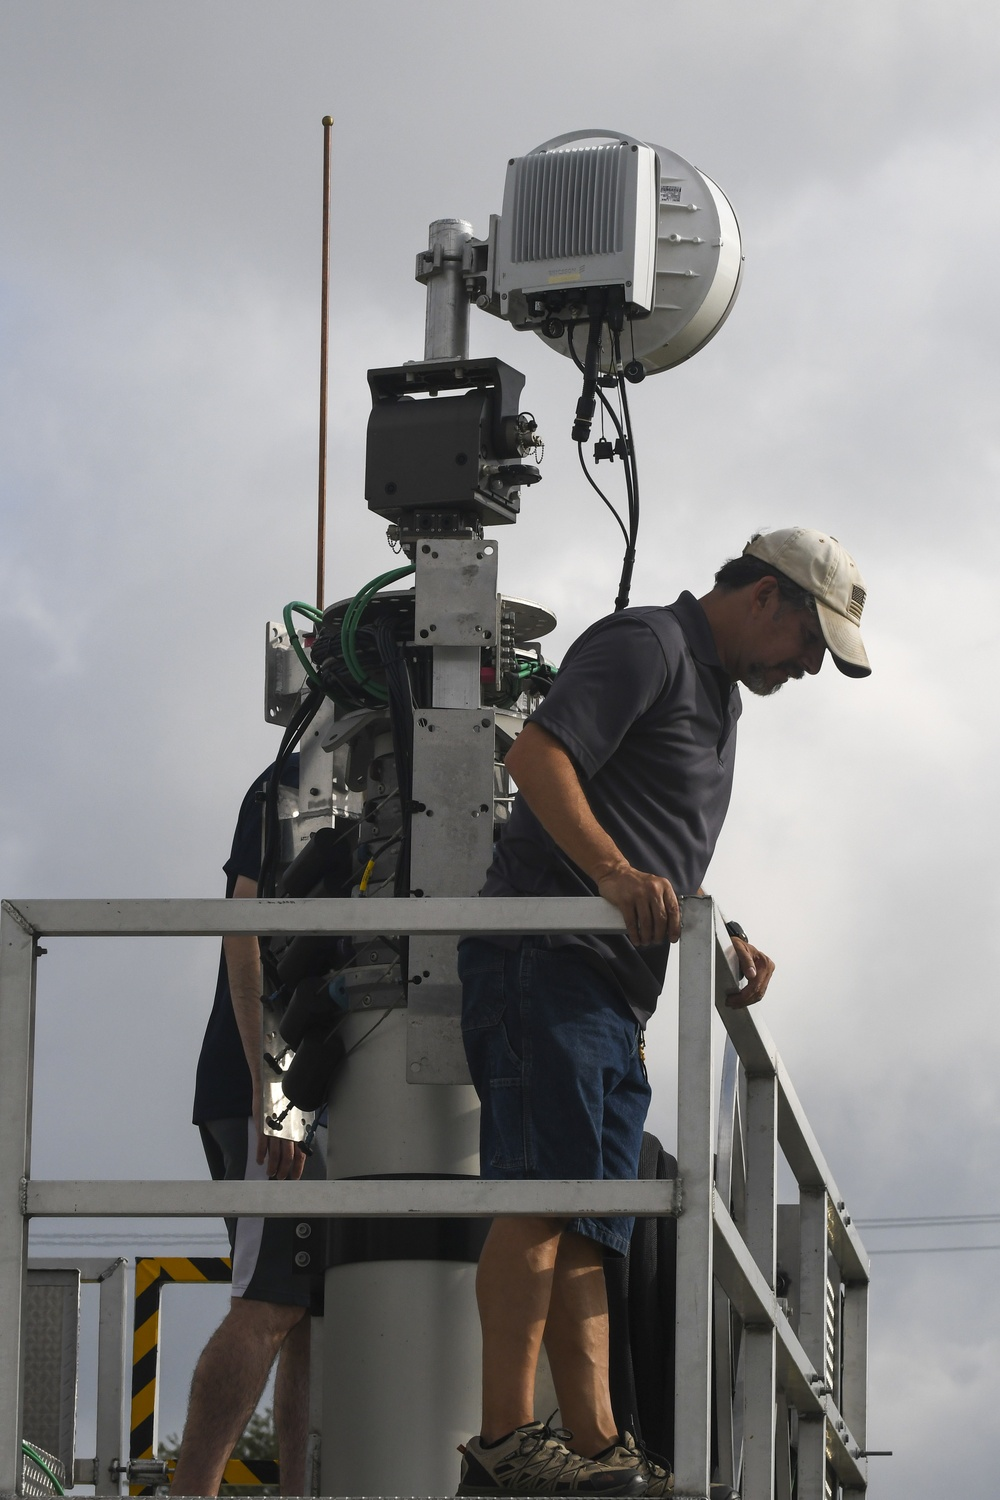 ARNORTH completes 5G CoLT training: expanding communication capabilities beyond imagination